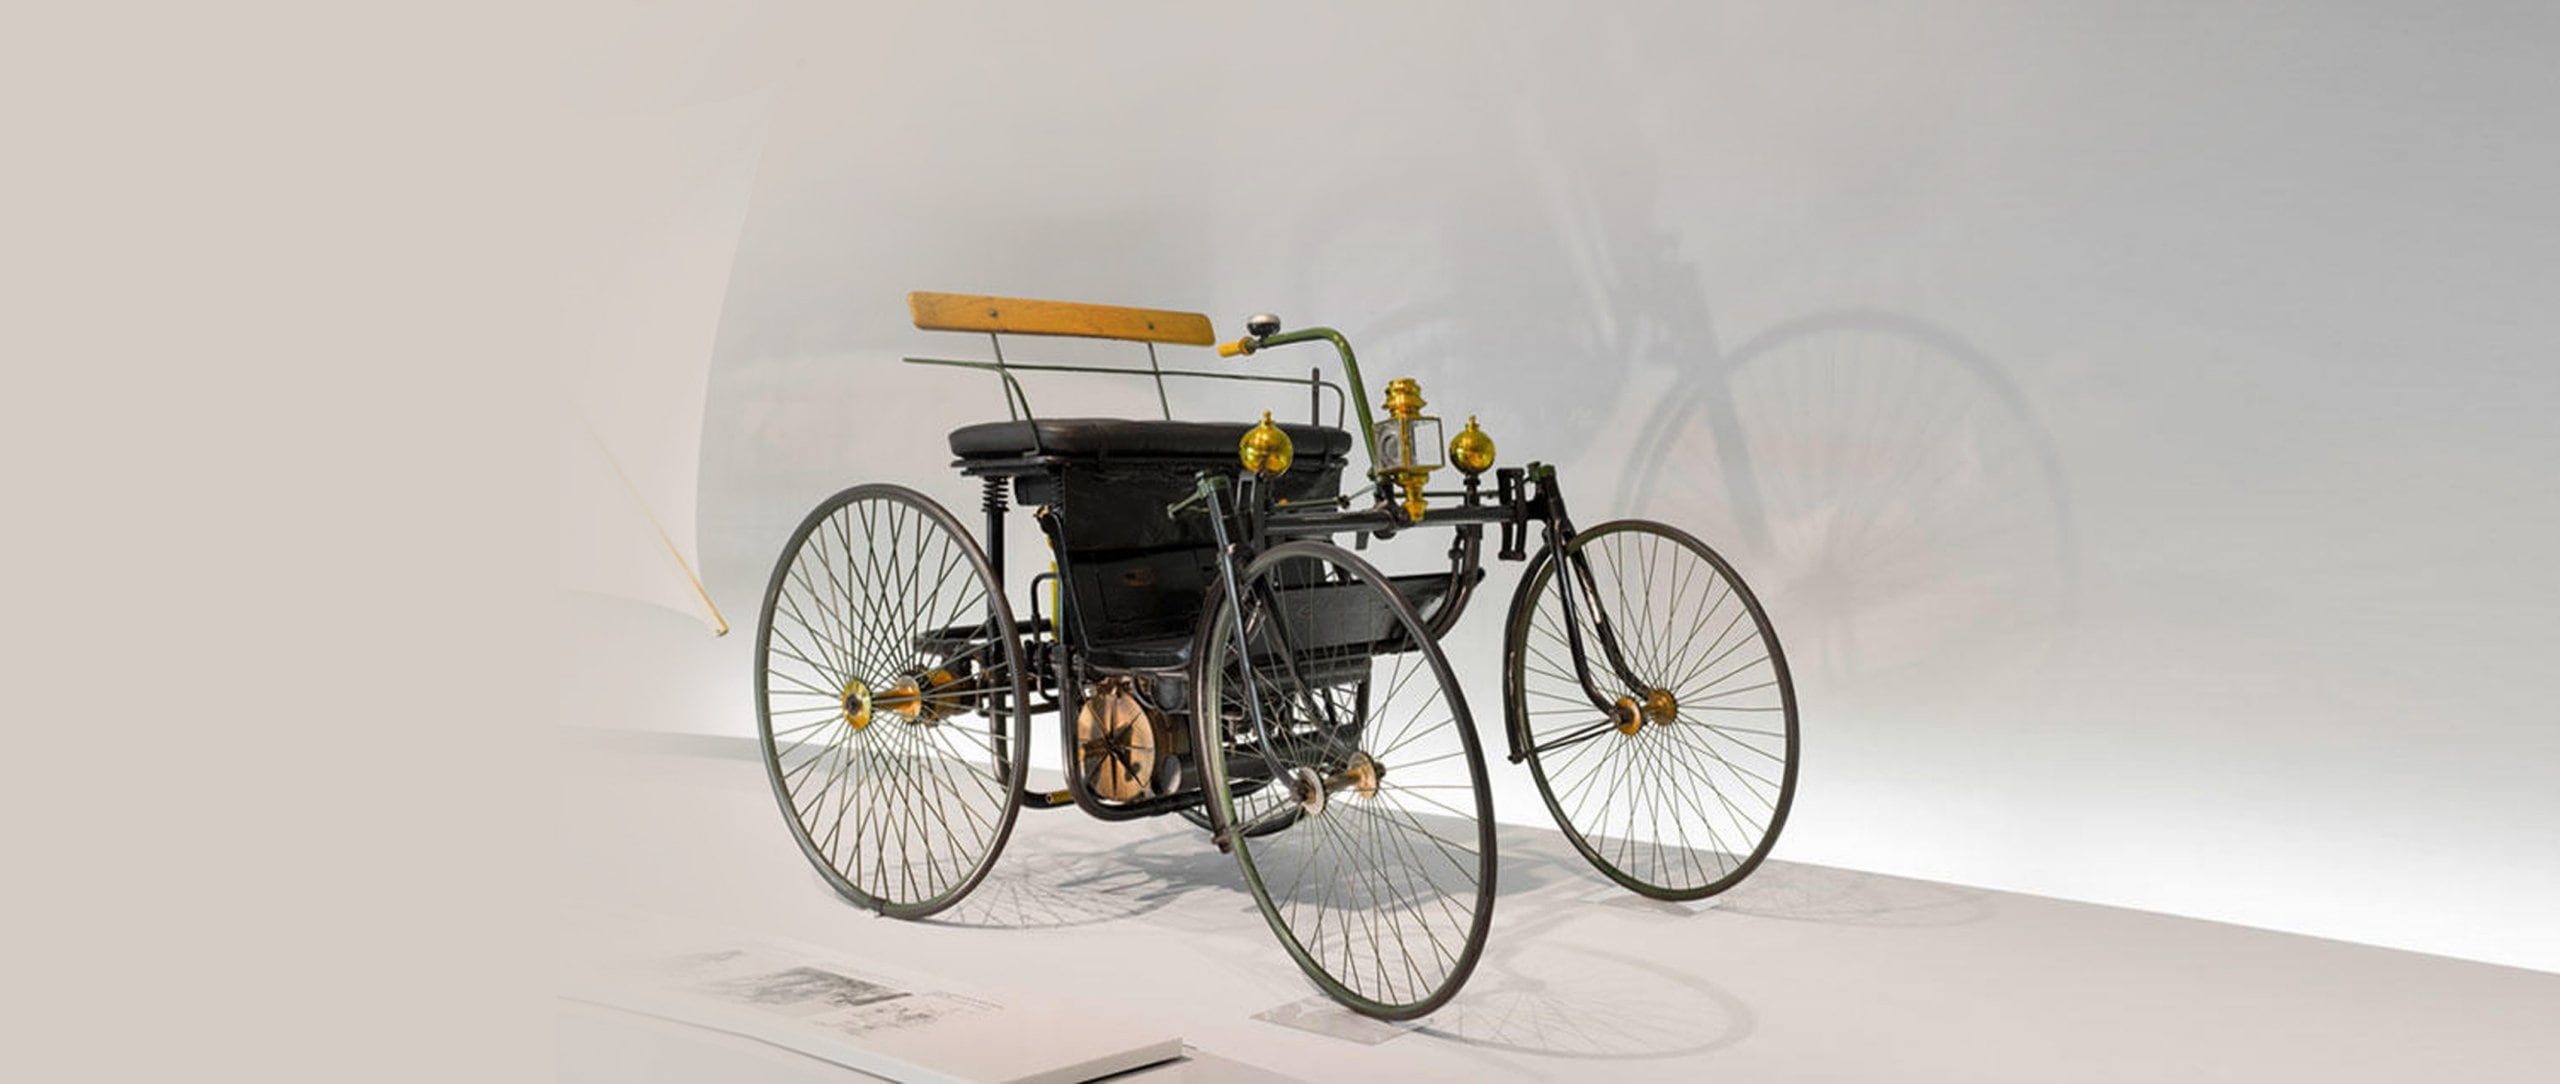 "Daimler motorized quadricycle - the ""wire-wheel car""."